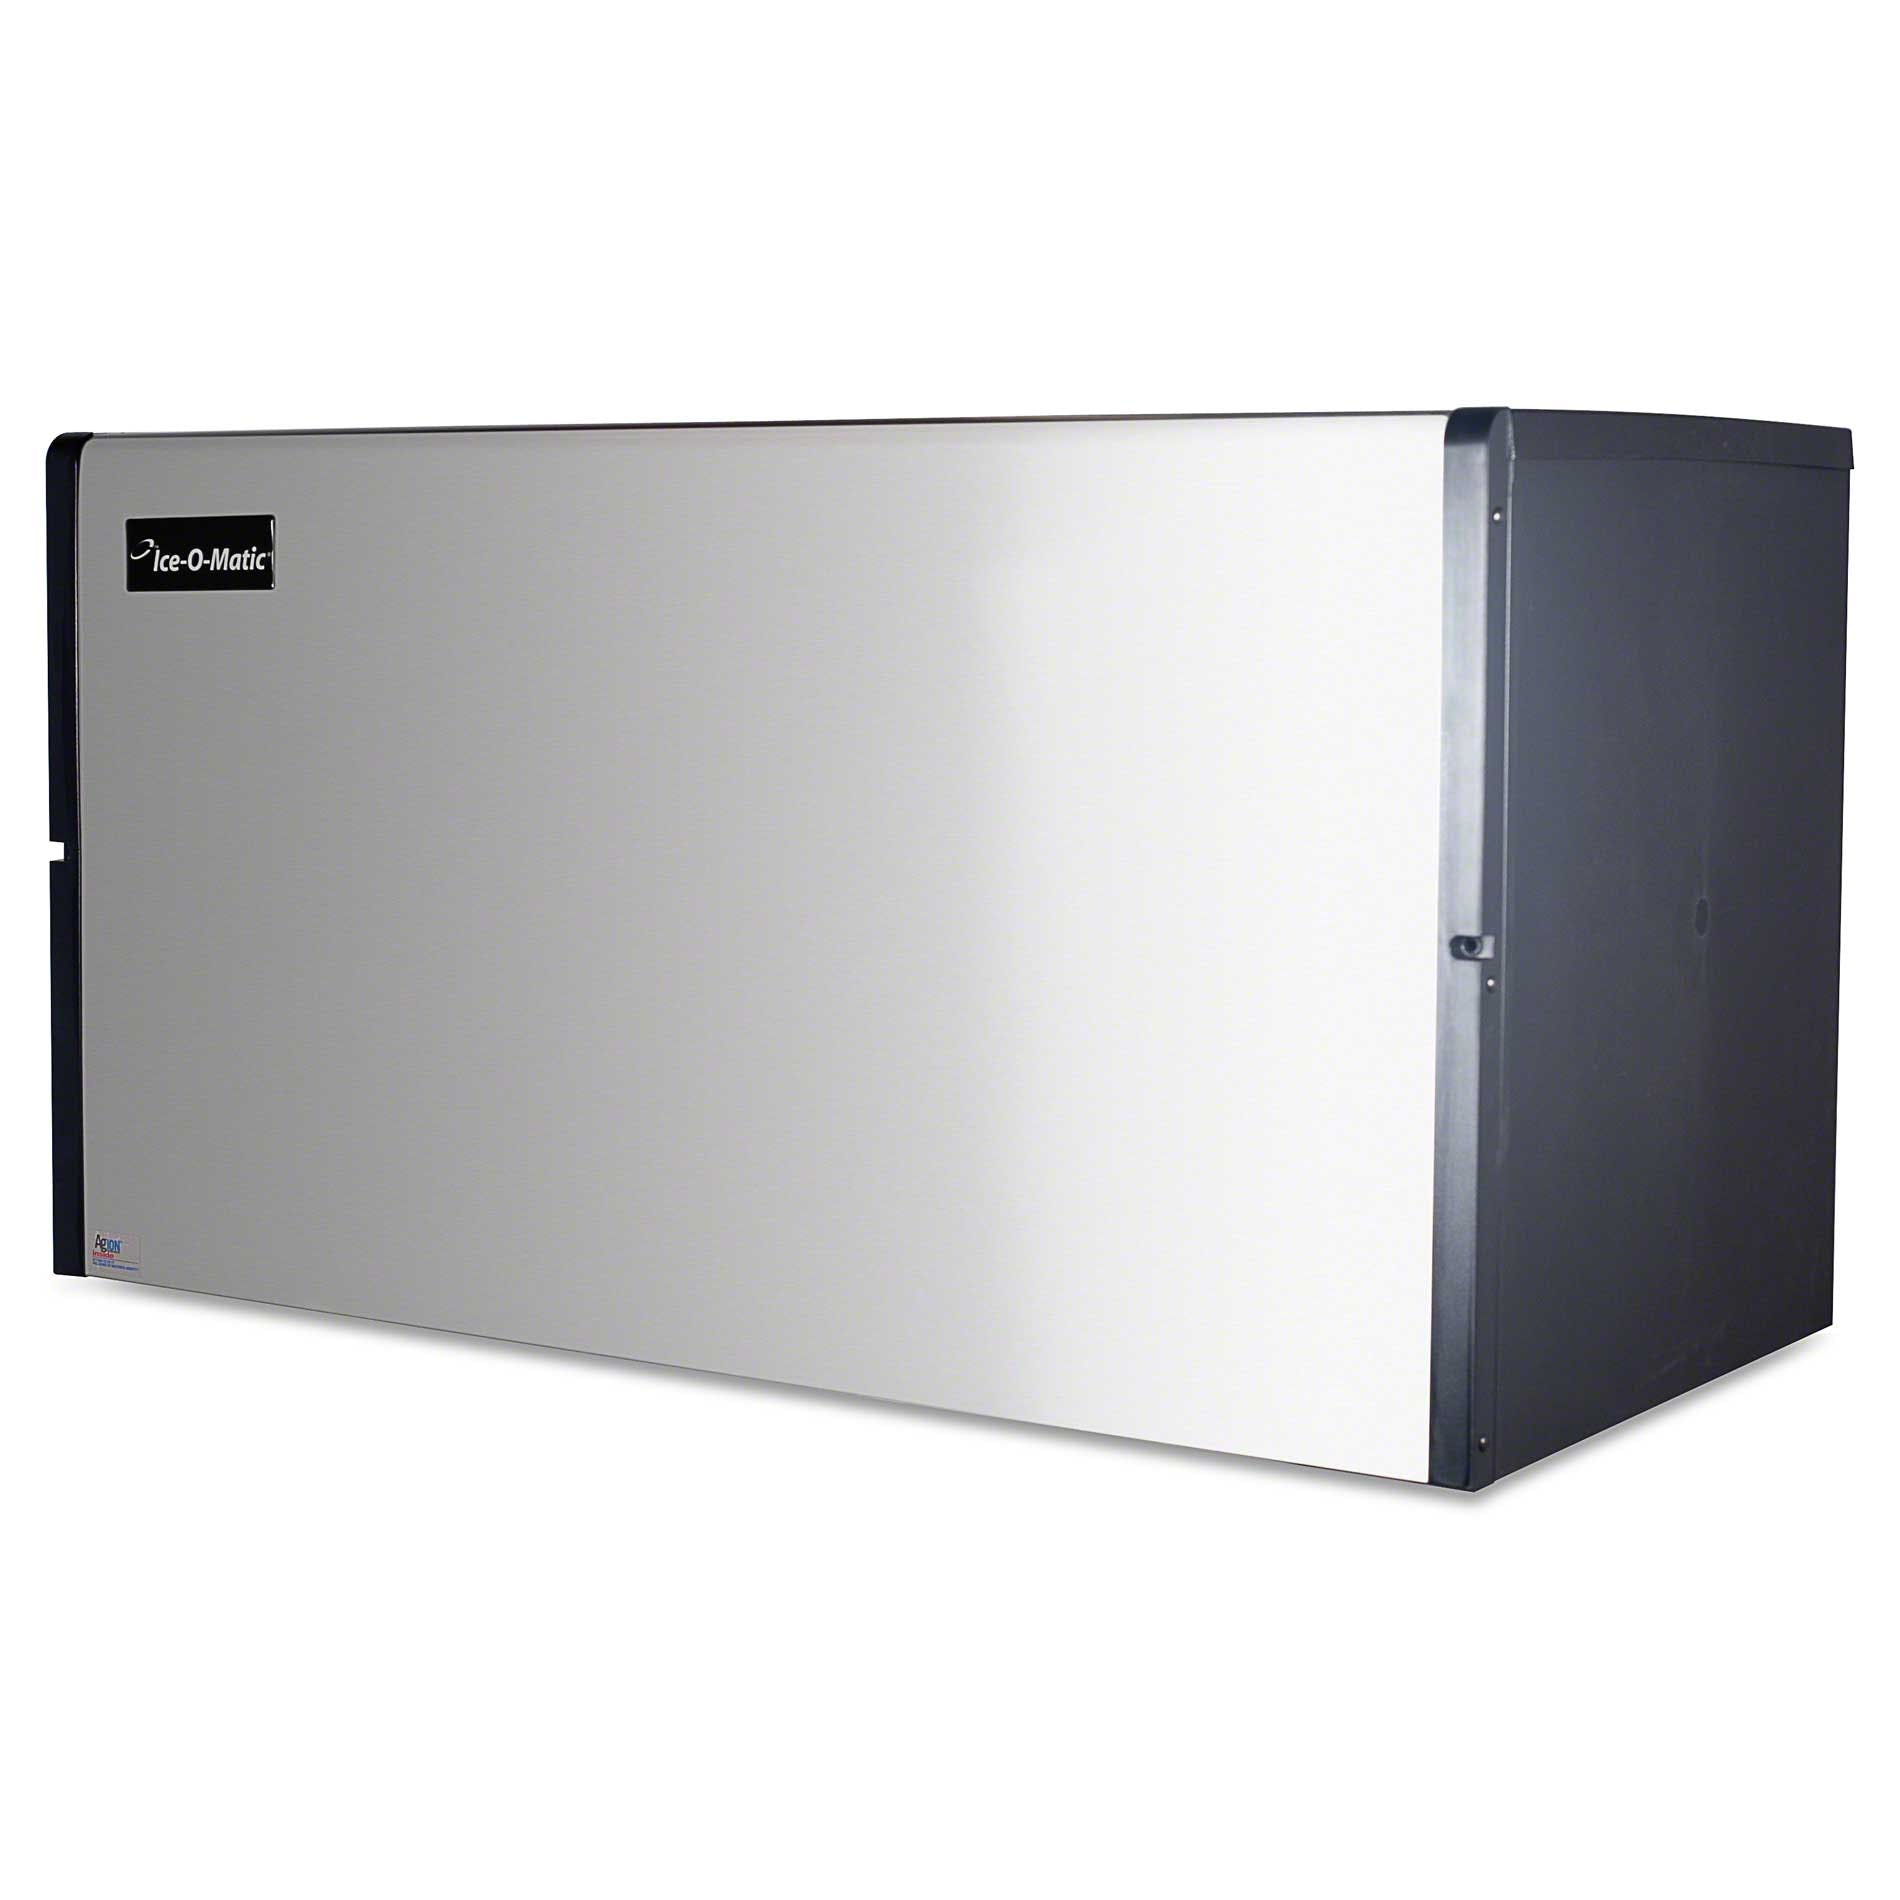 Ice-O-Matic - ICE2106FW 1856 lb Full Size Cube Ice Machine - sold by Food Service Warehouse